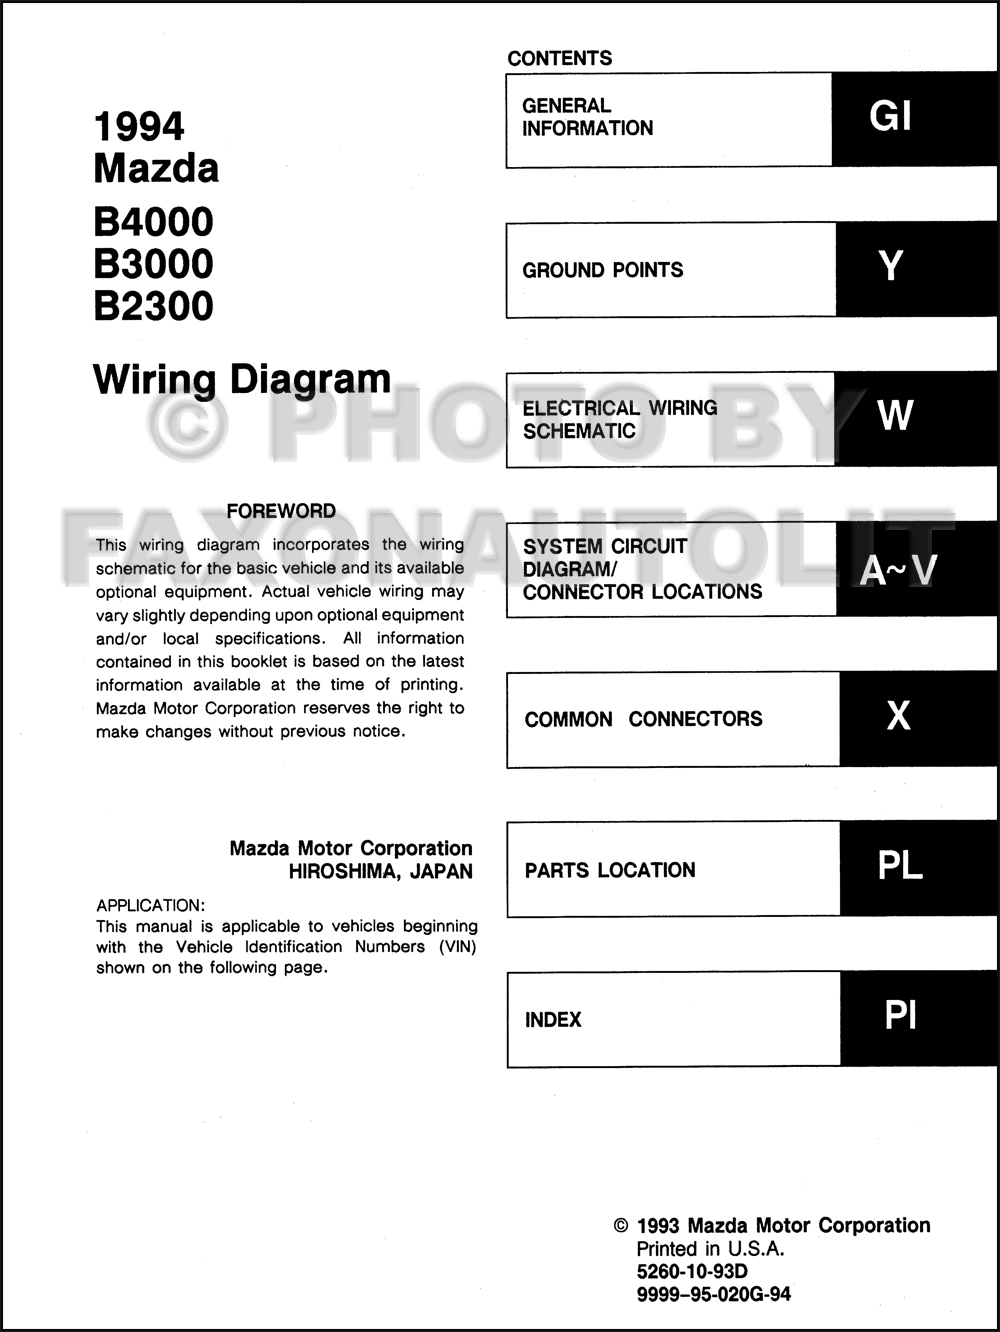 1994MazdaB4000B3000B23000OWD TOC 1994 mazda b4000 b3000 b2300 pickup truck wiring diagram manual 1998 mazda b4000 fuse box diagram at nearapp.co